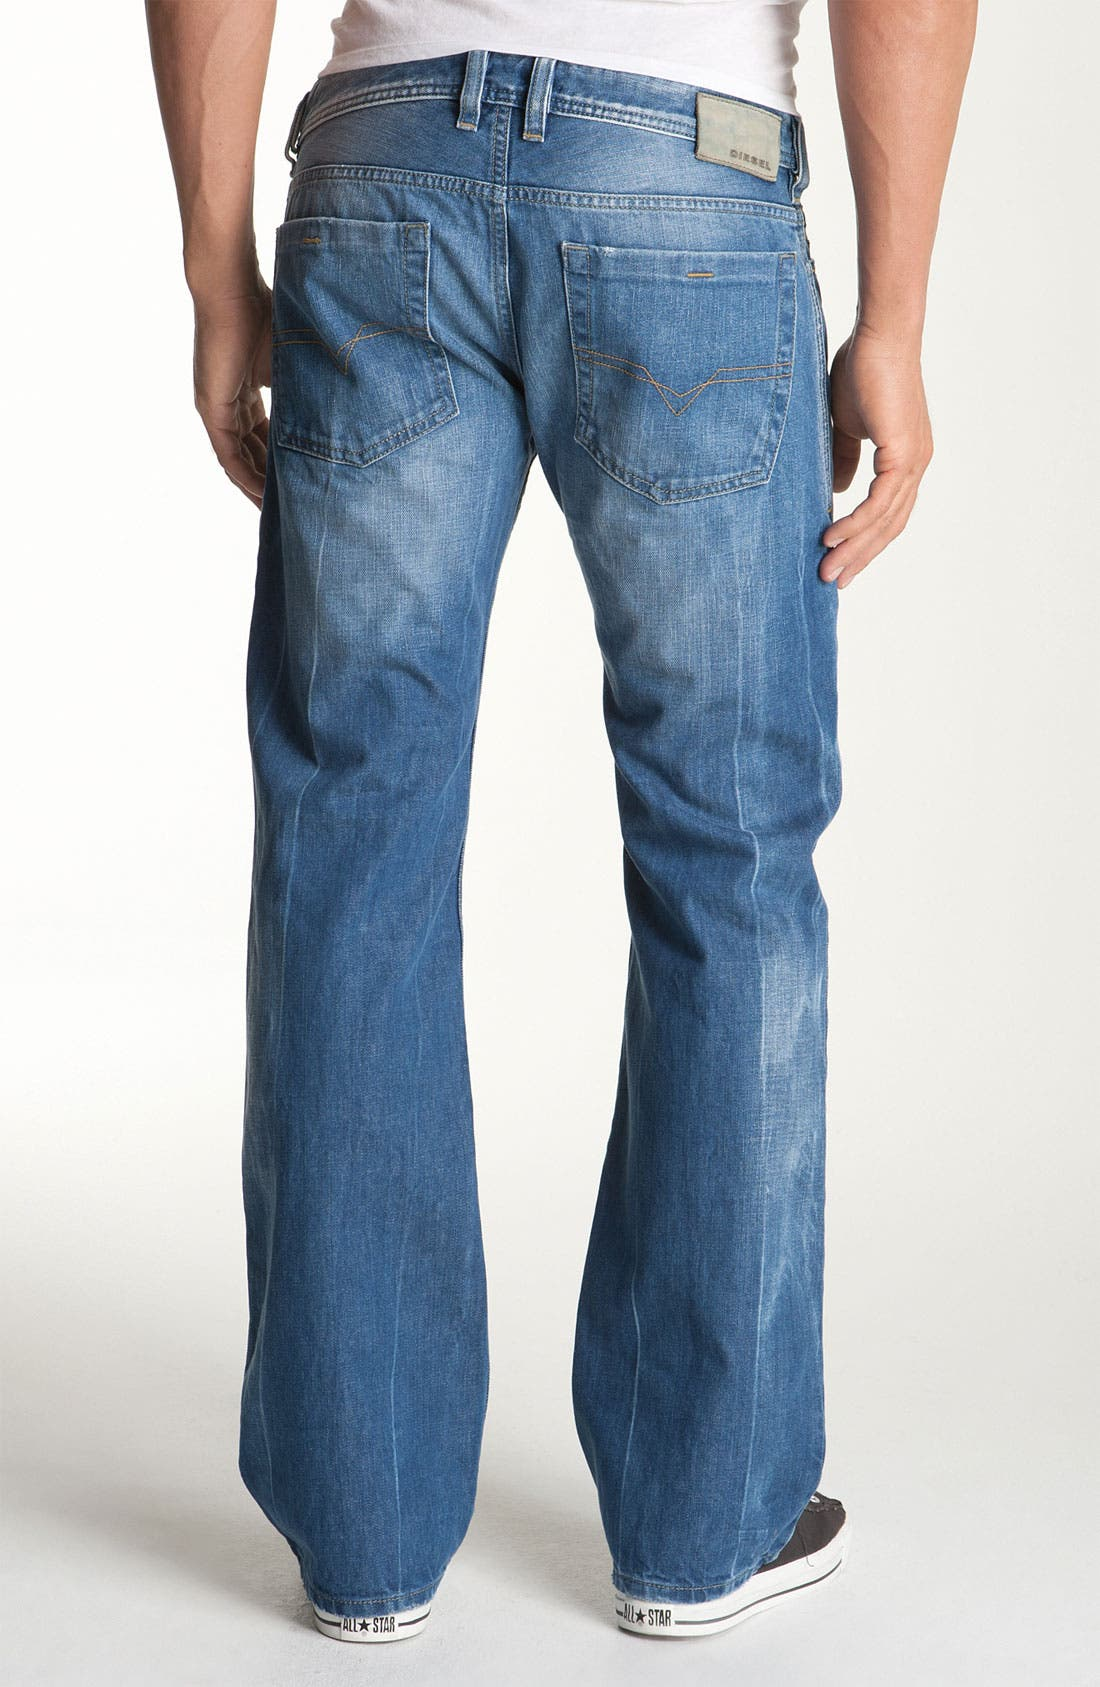 Alternate Image 1 Selected - DIESEL® 'Zatiny' Bootcut Jeans (888B)